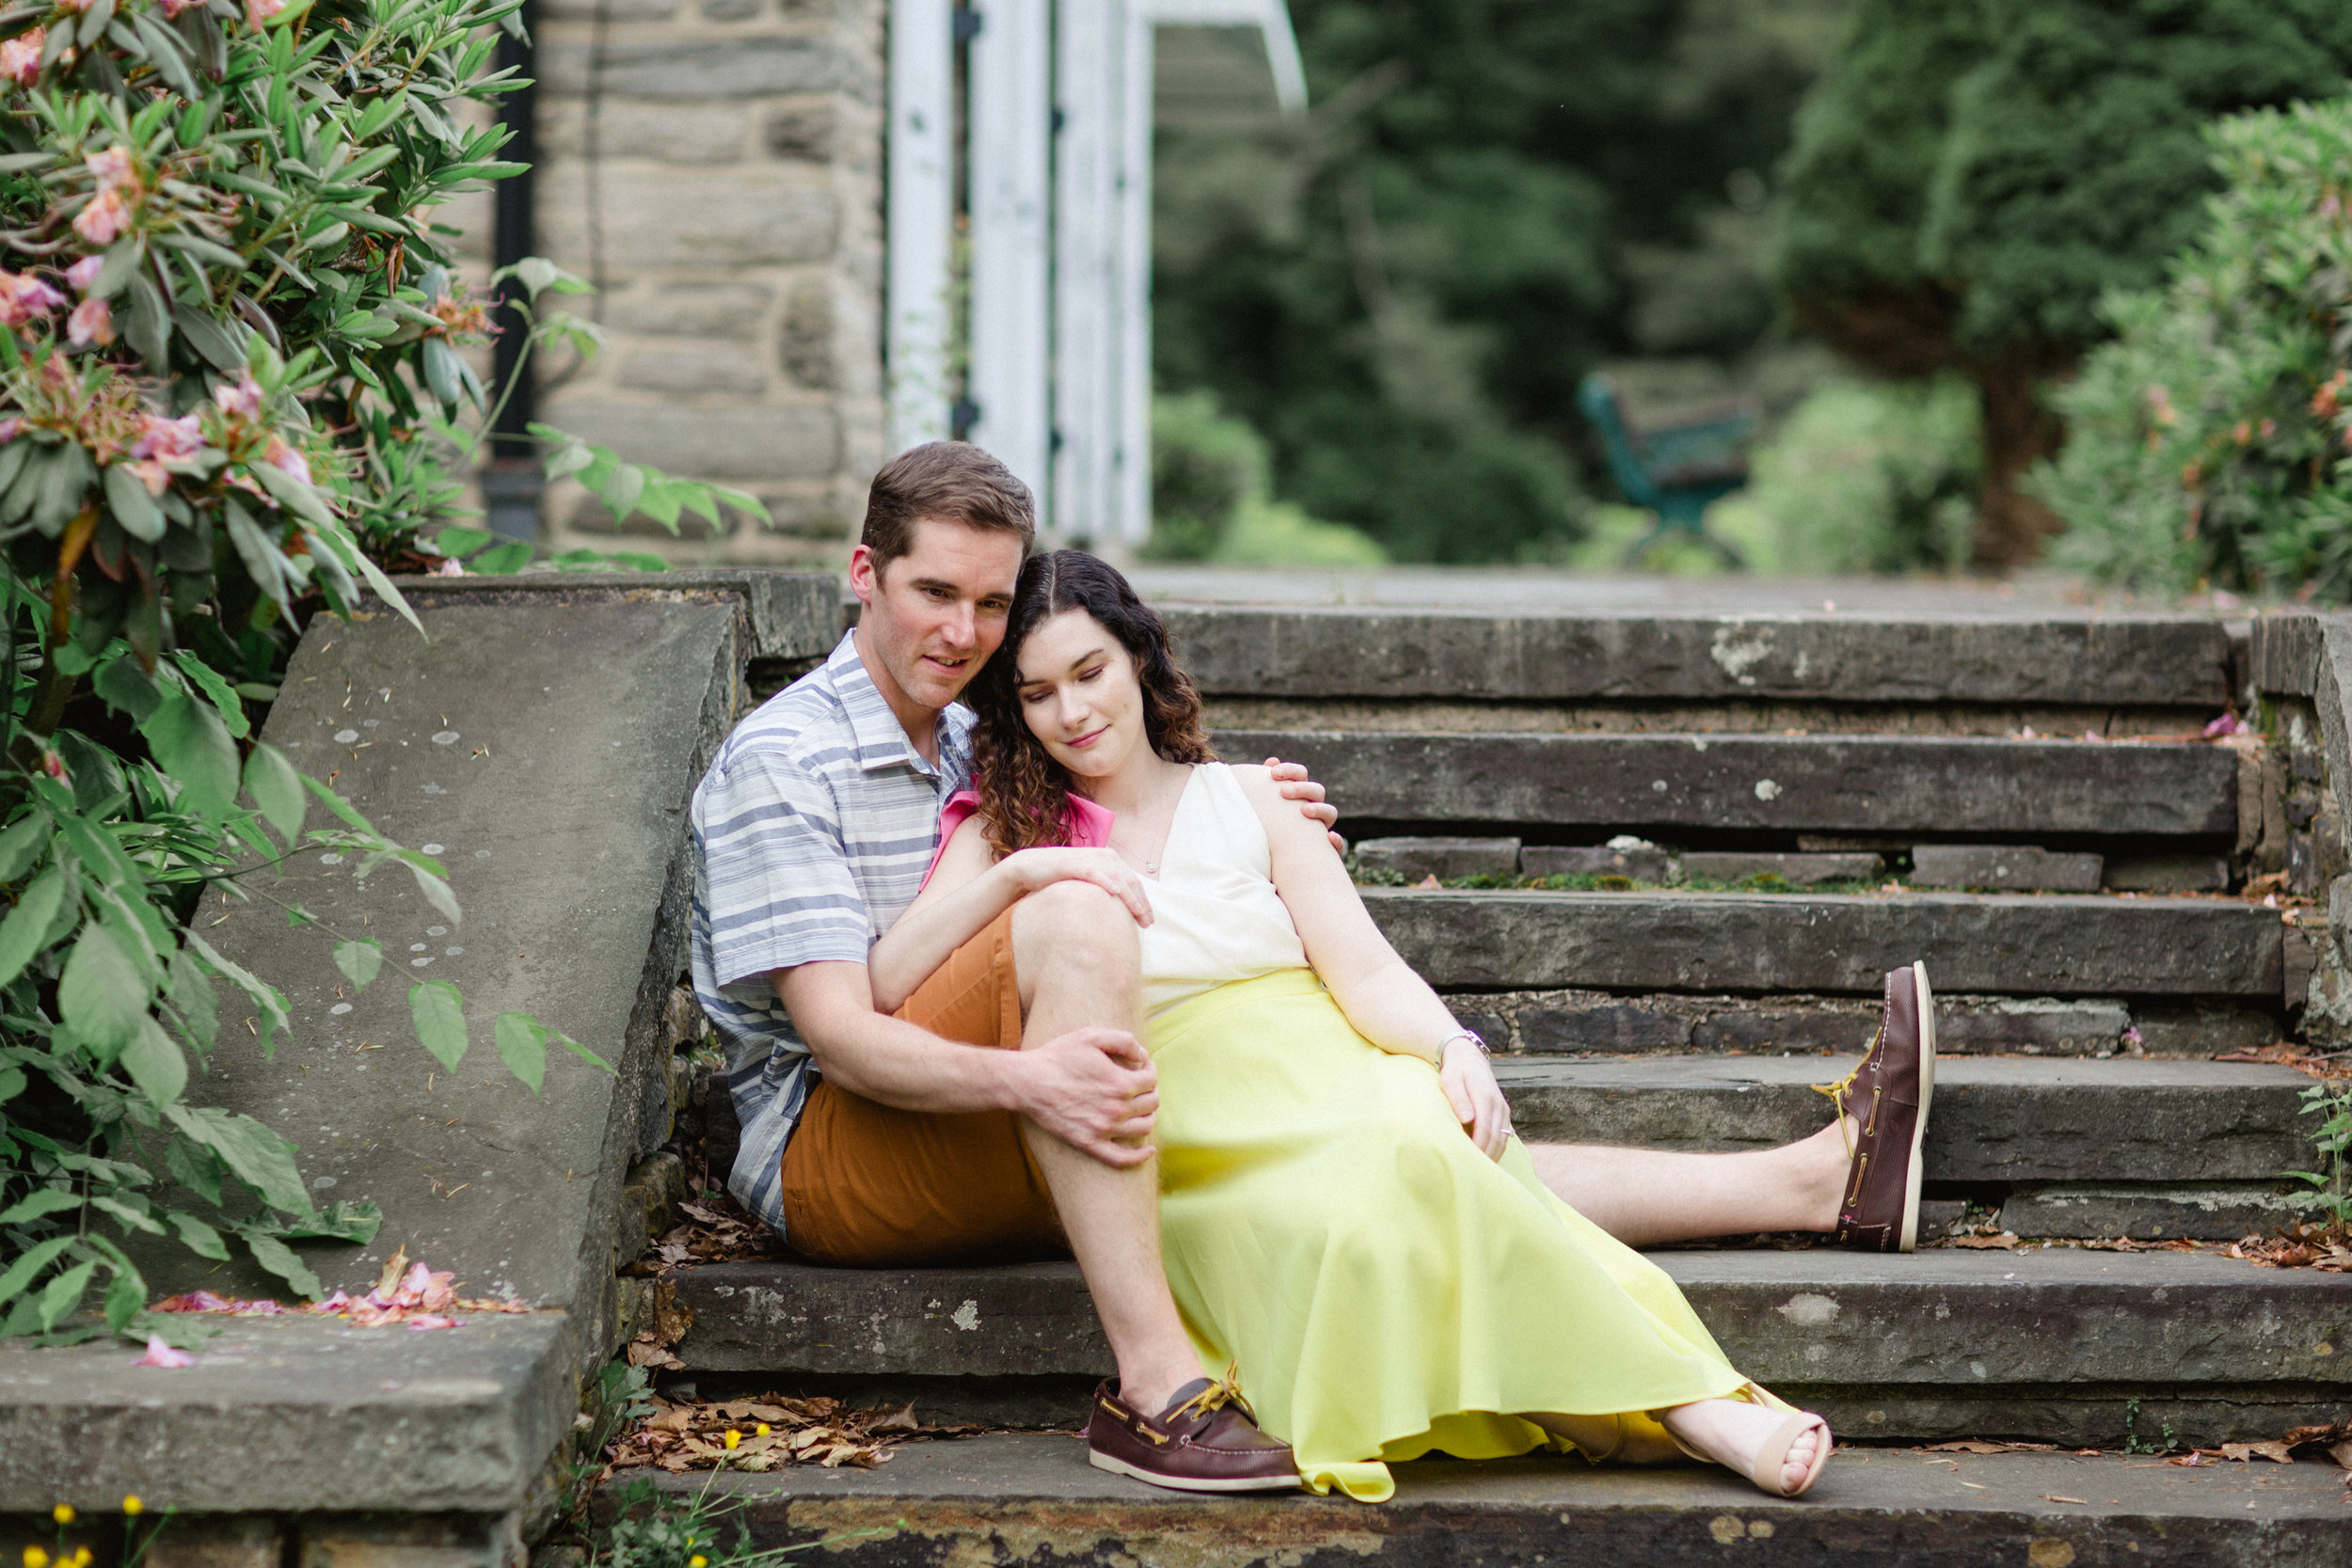 Moscow PA Engagement Session Photos_JDP-13.jpg